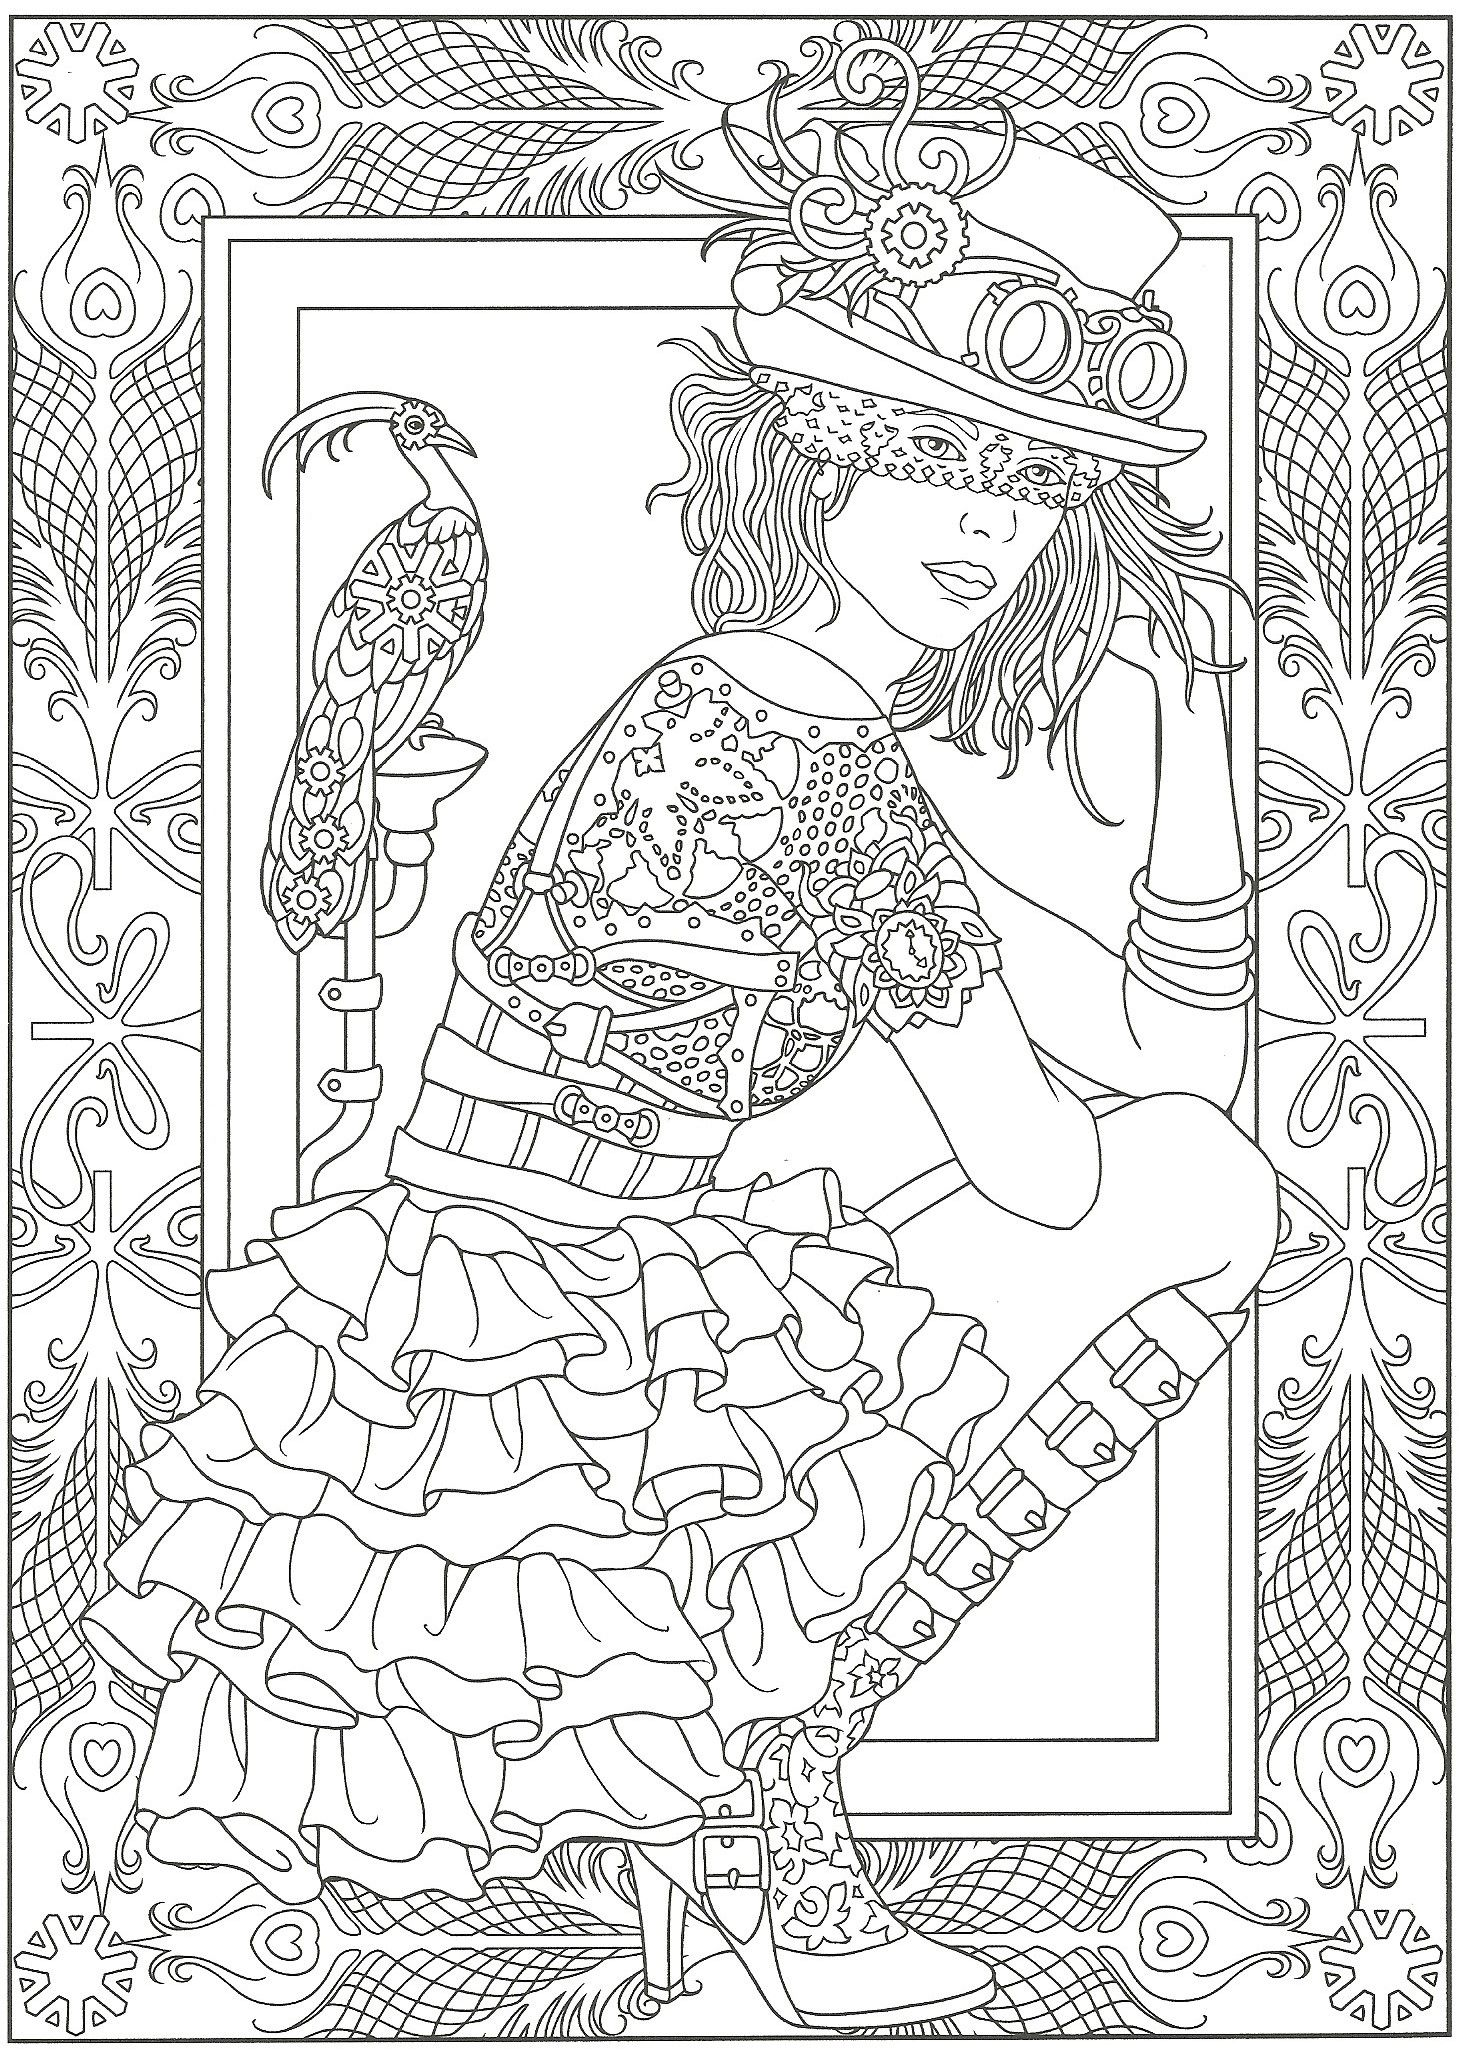 Colouring books for adults vancouver - Steampunk Artwork By Marty Noble Adult Coloring Page From Creative Haven Steampunk Fashions